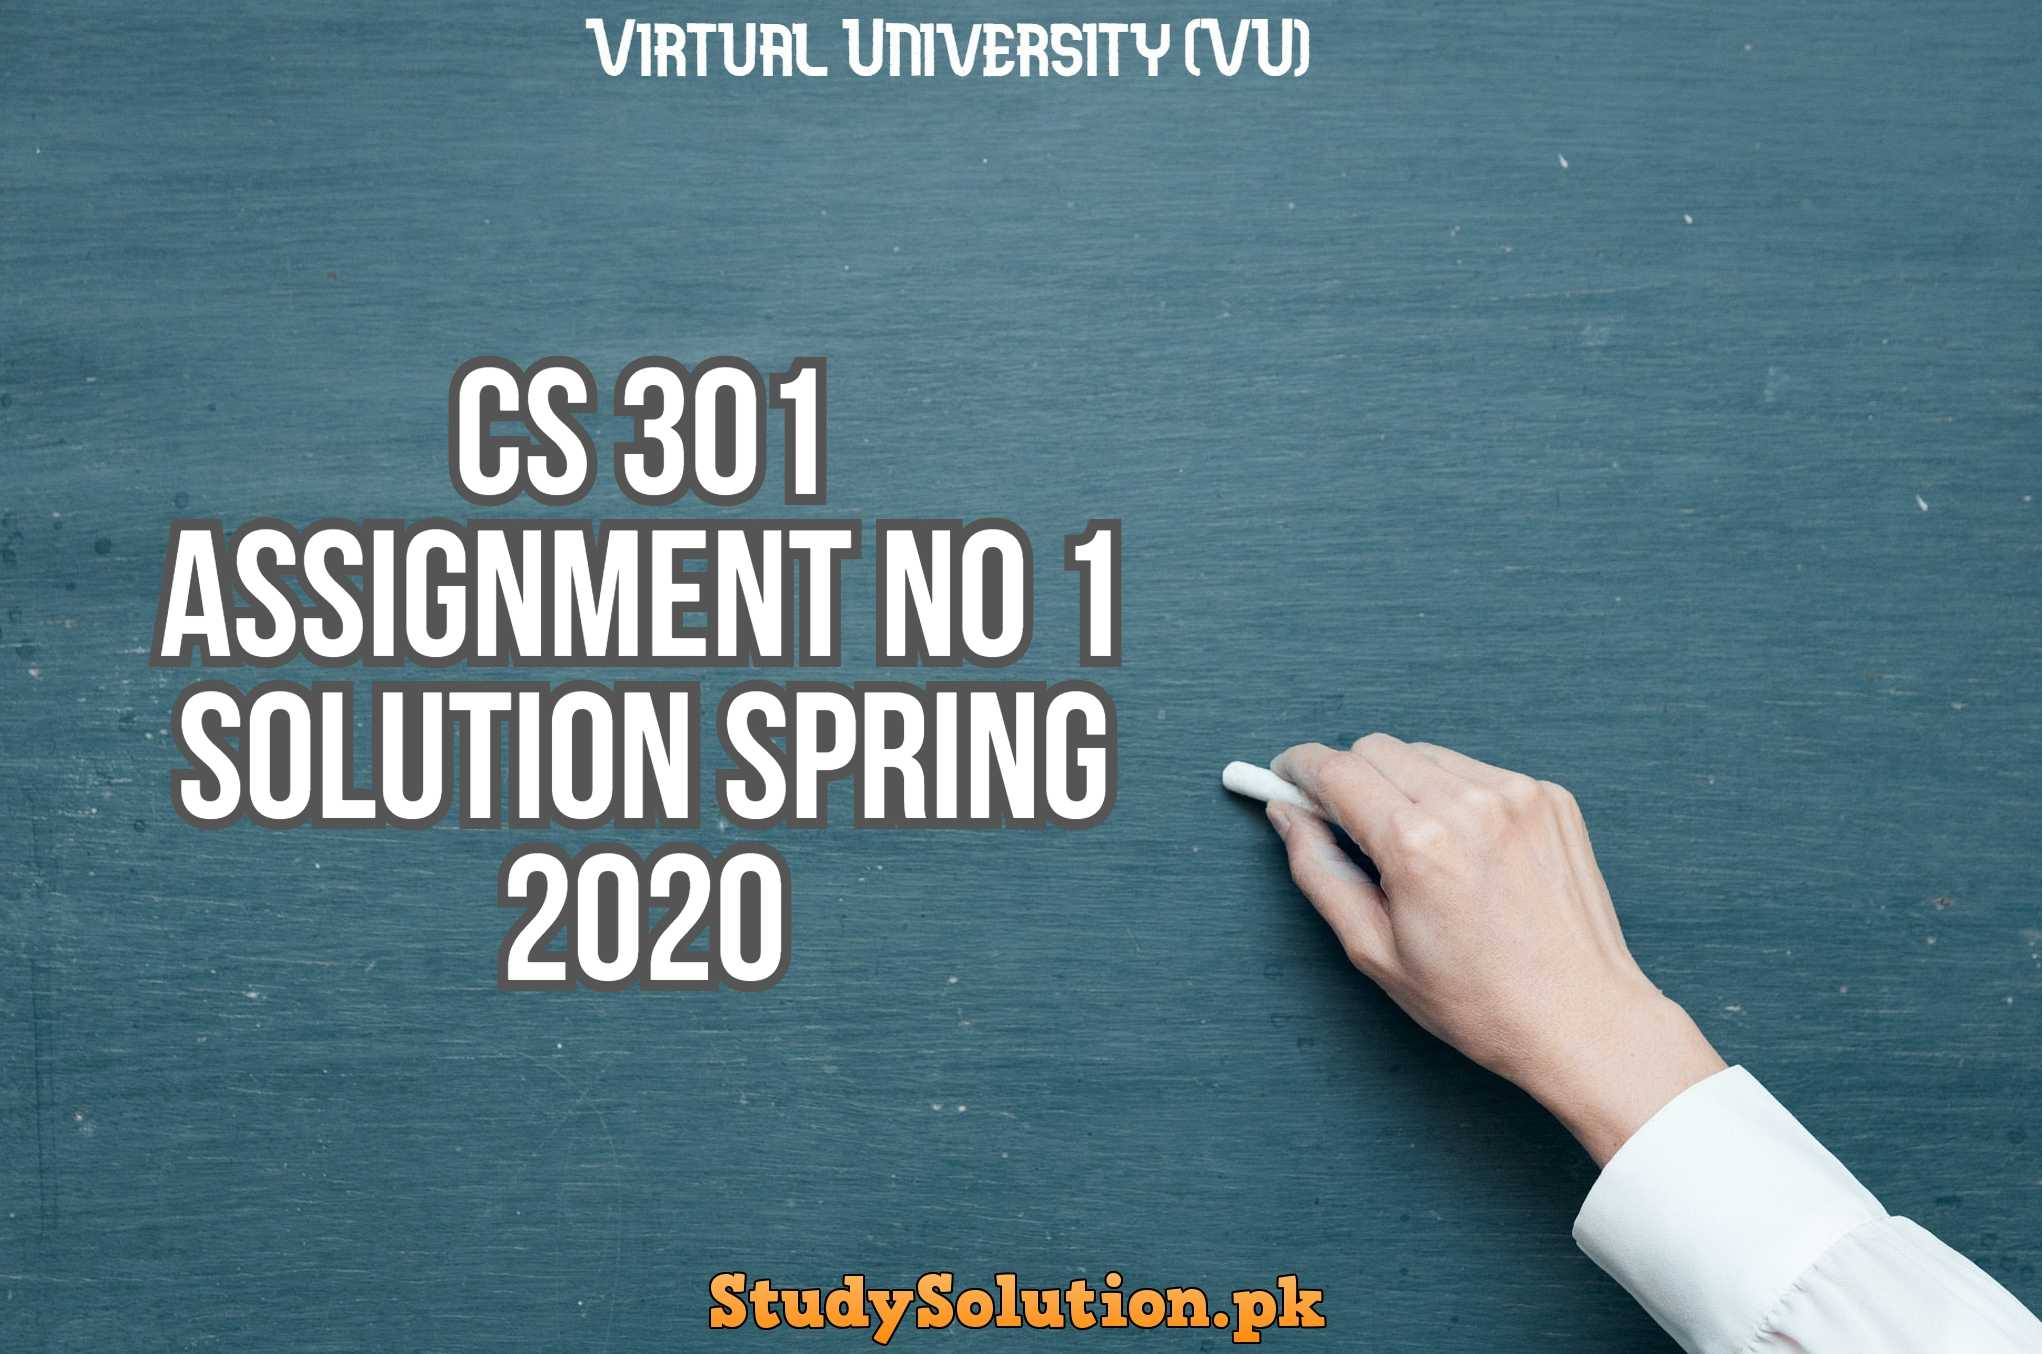 CS 301 Assignment No 1 Solution Spring 2020